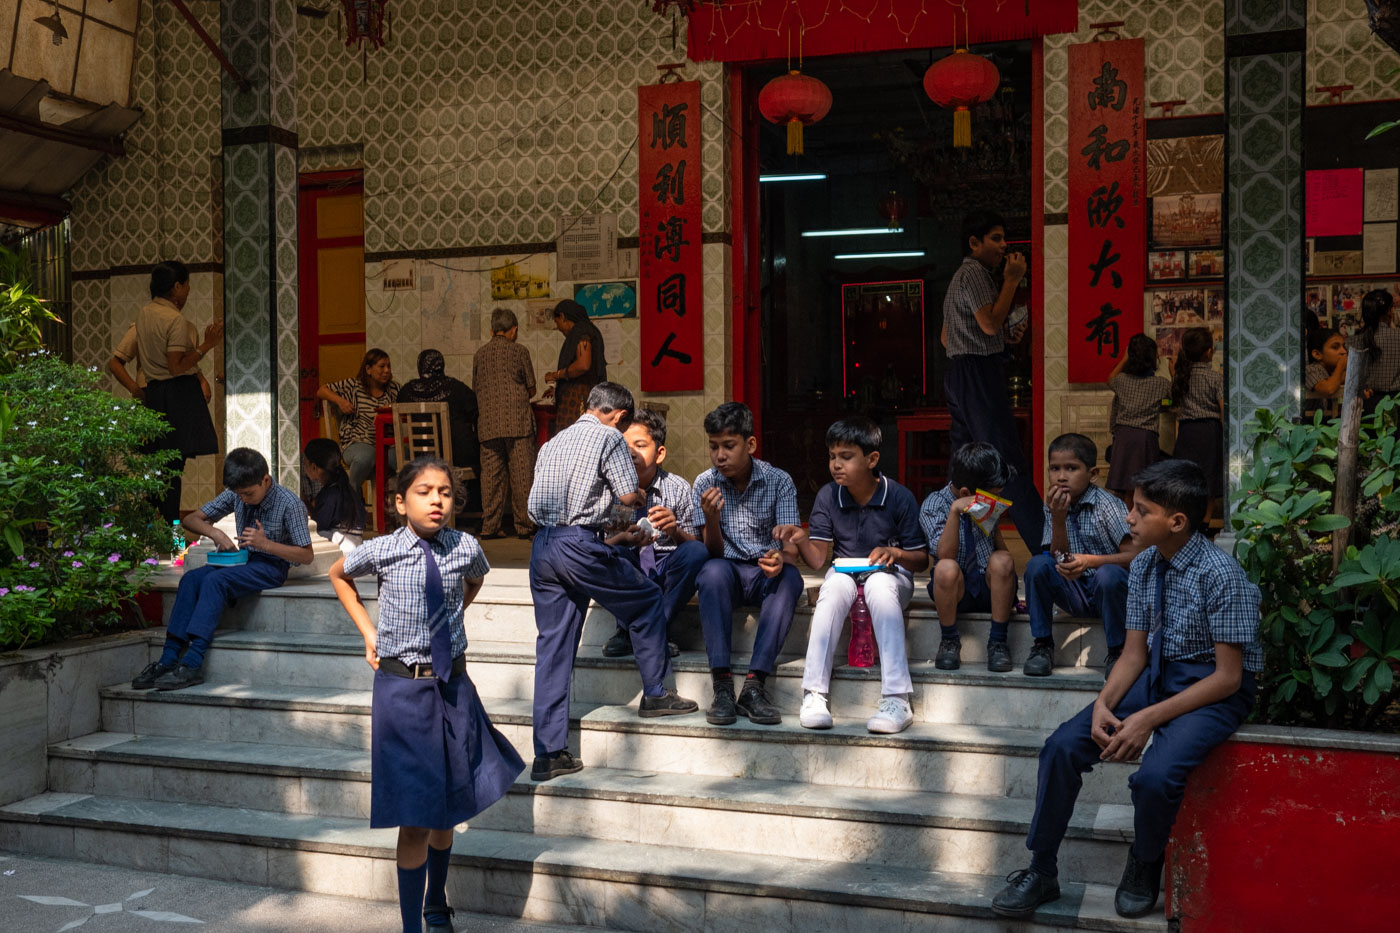 From  Kolkata, India  — On cultural survival, contentious histories, and what makes a Chinatown in this modern age in light of the drastically dwindled numbers of Chinese in the city. (Supported by the  Out of Eden Walk  project and the National Geographic Society.)